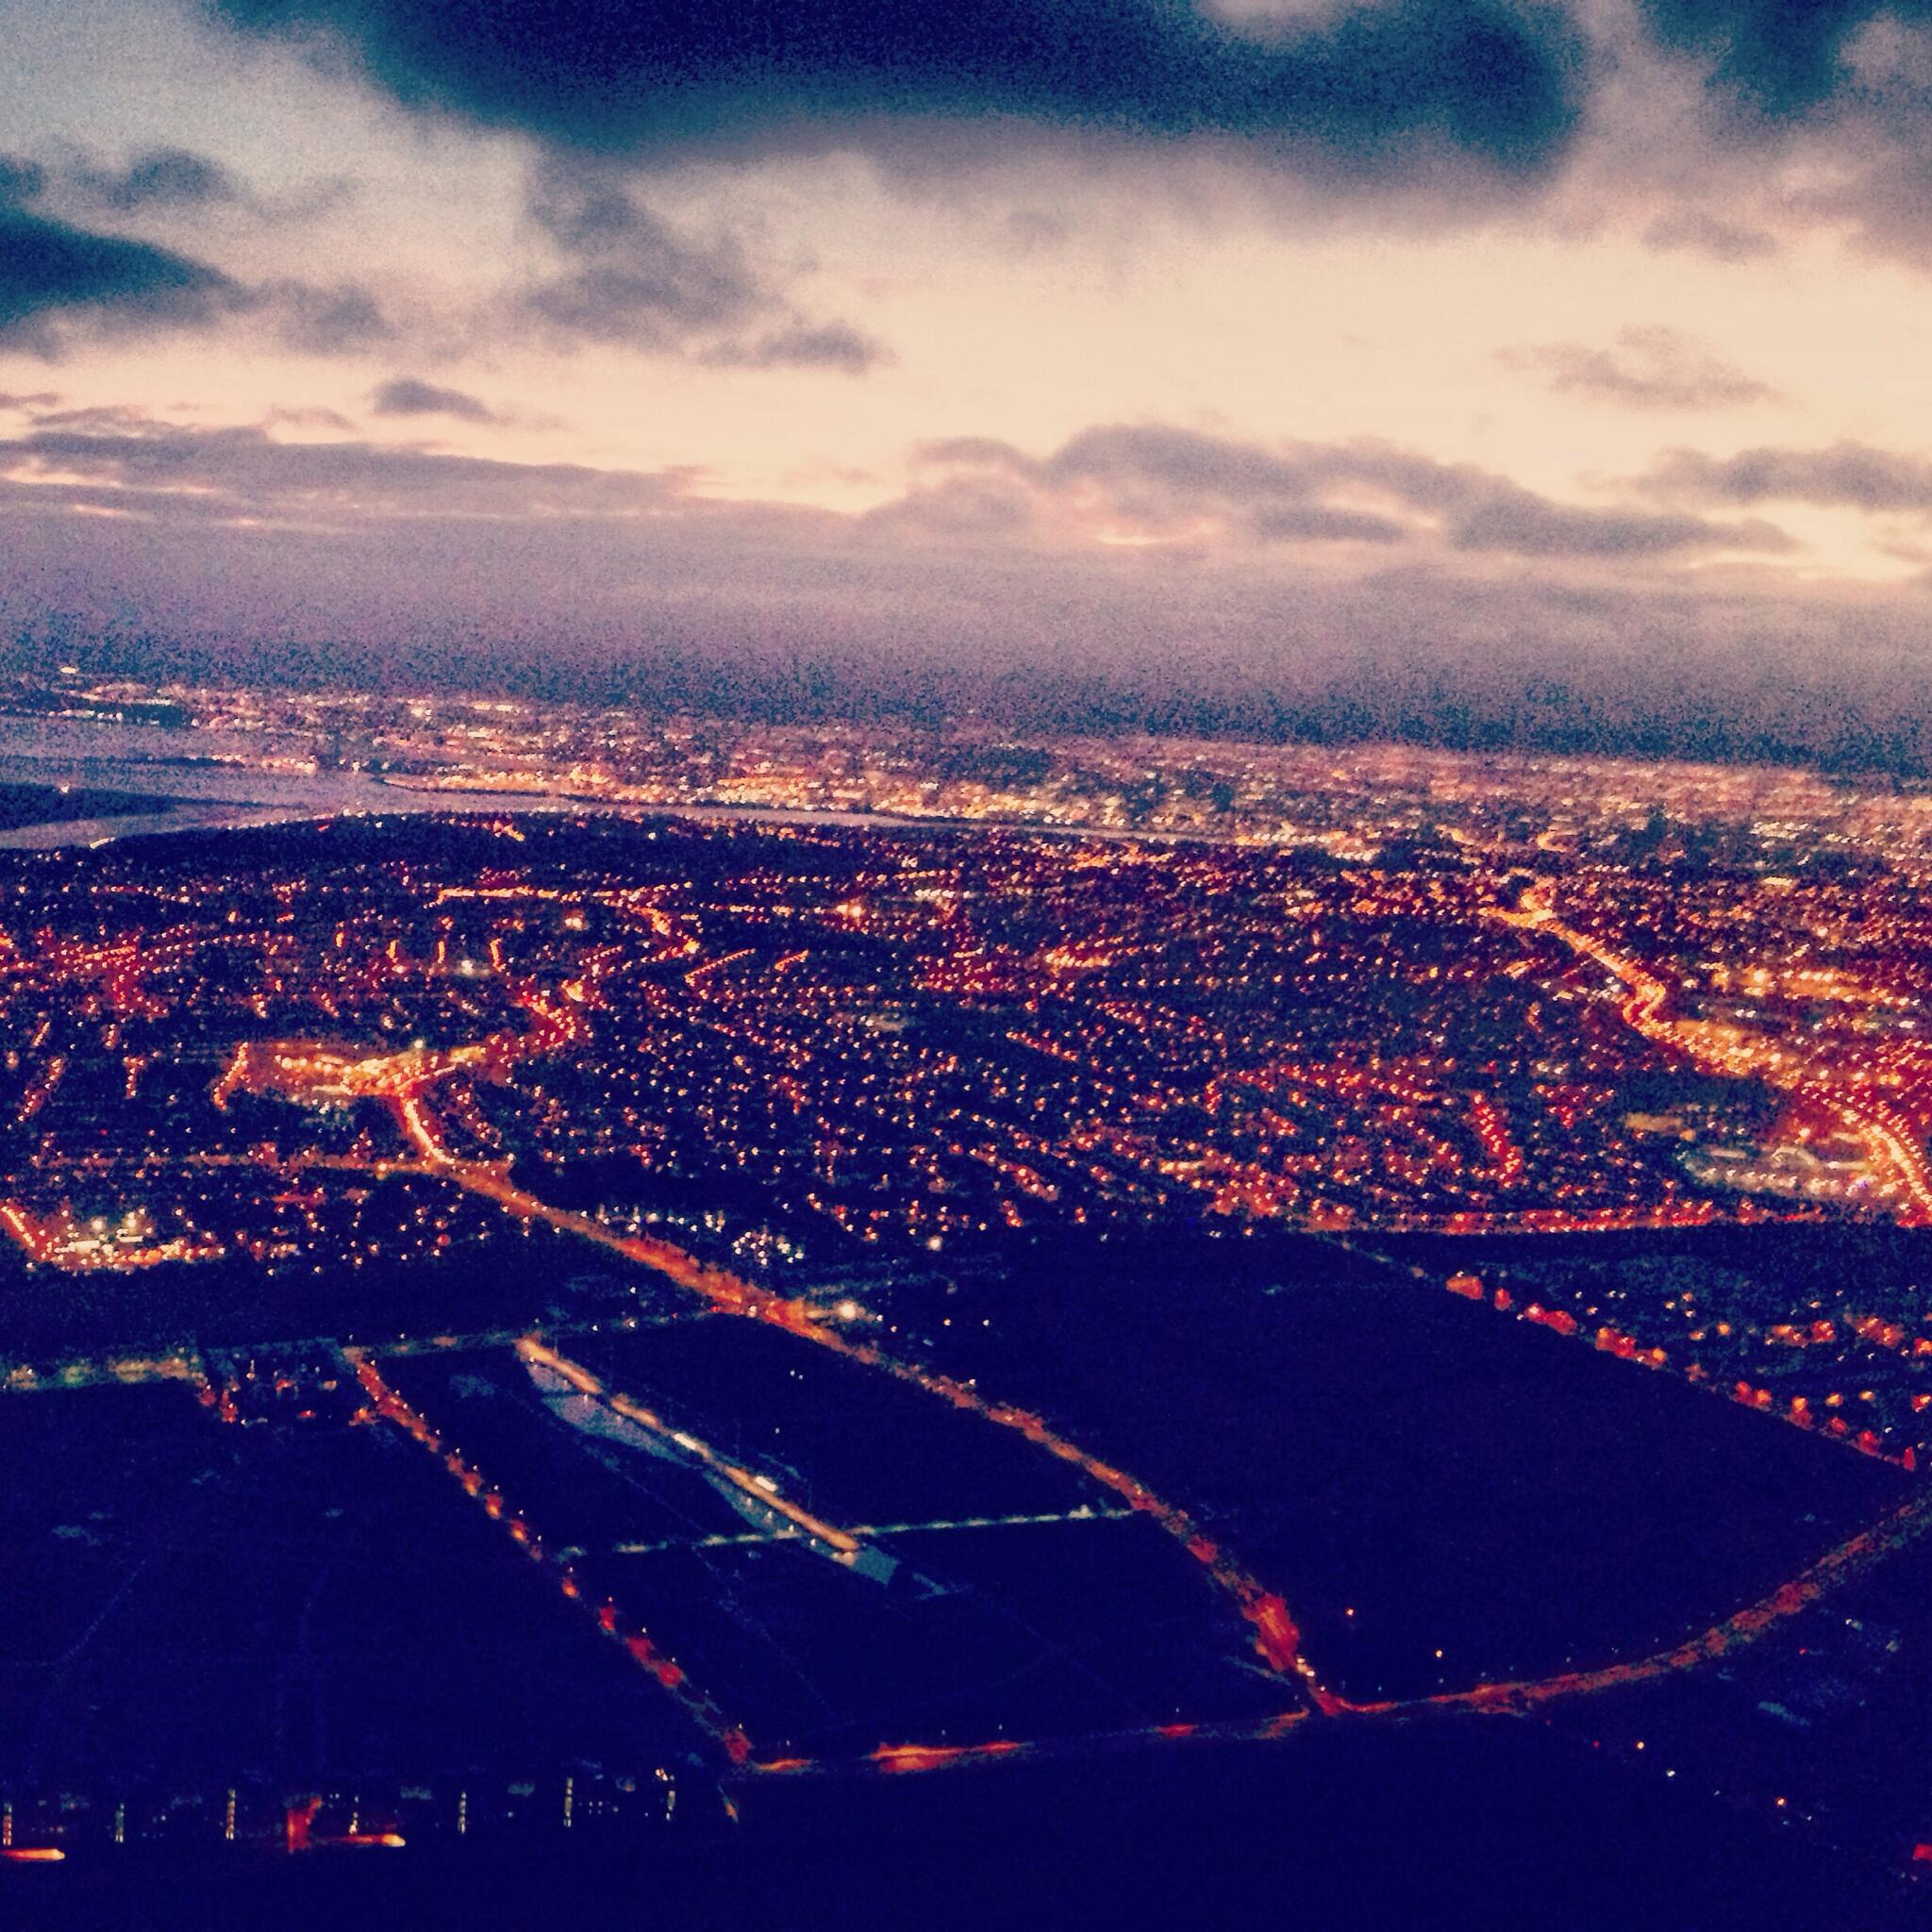 RT @fayemckeever: Dublin from the sky 🍀 http://t.co/xDwW6MbTjH